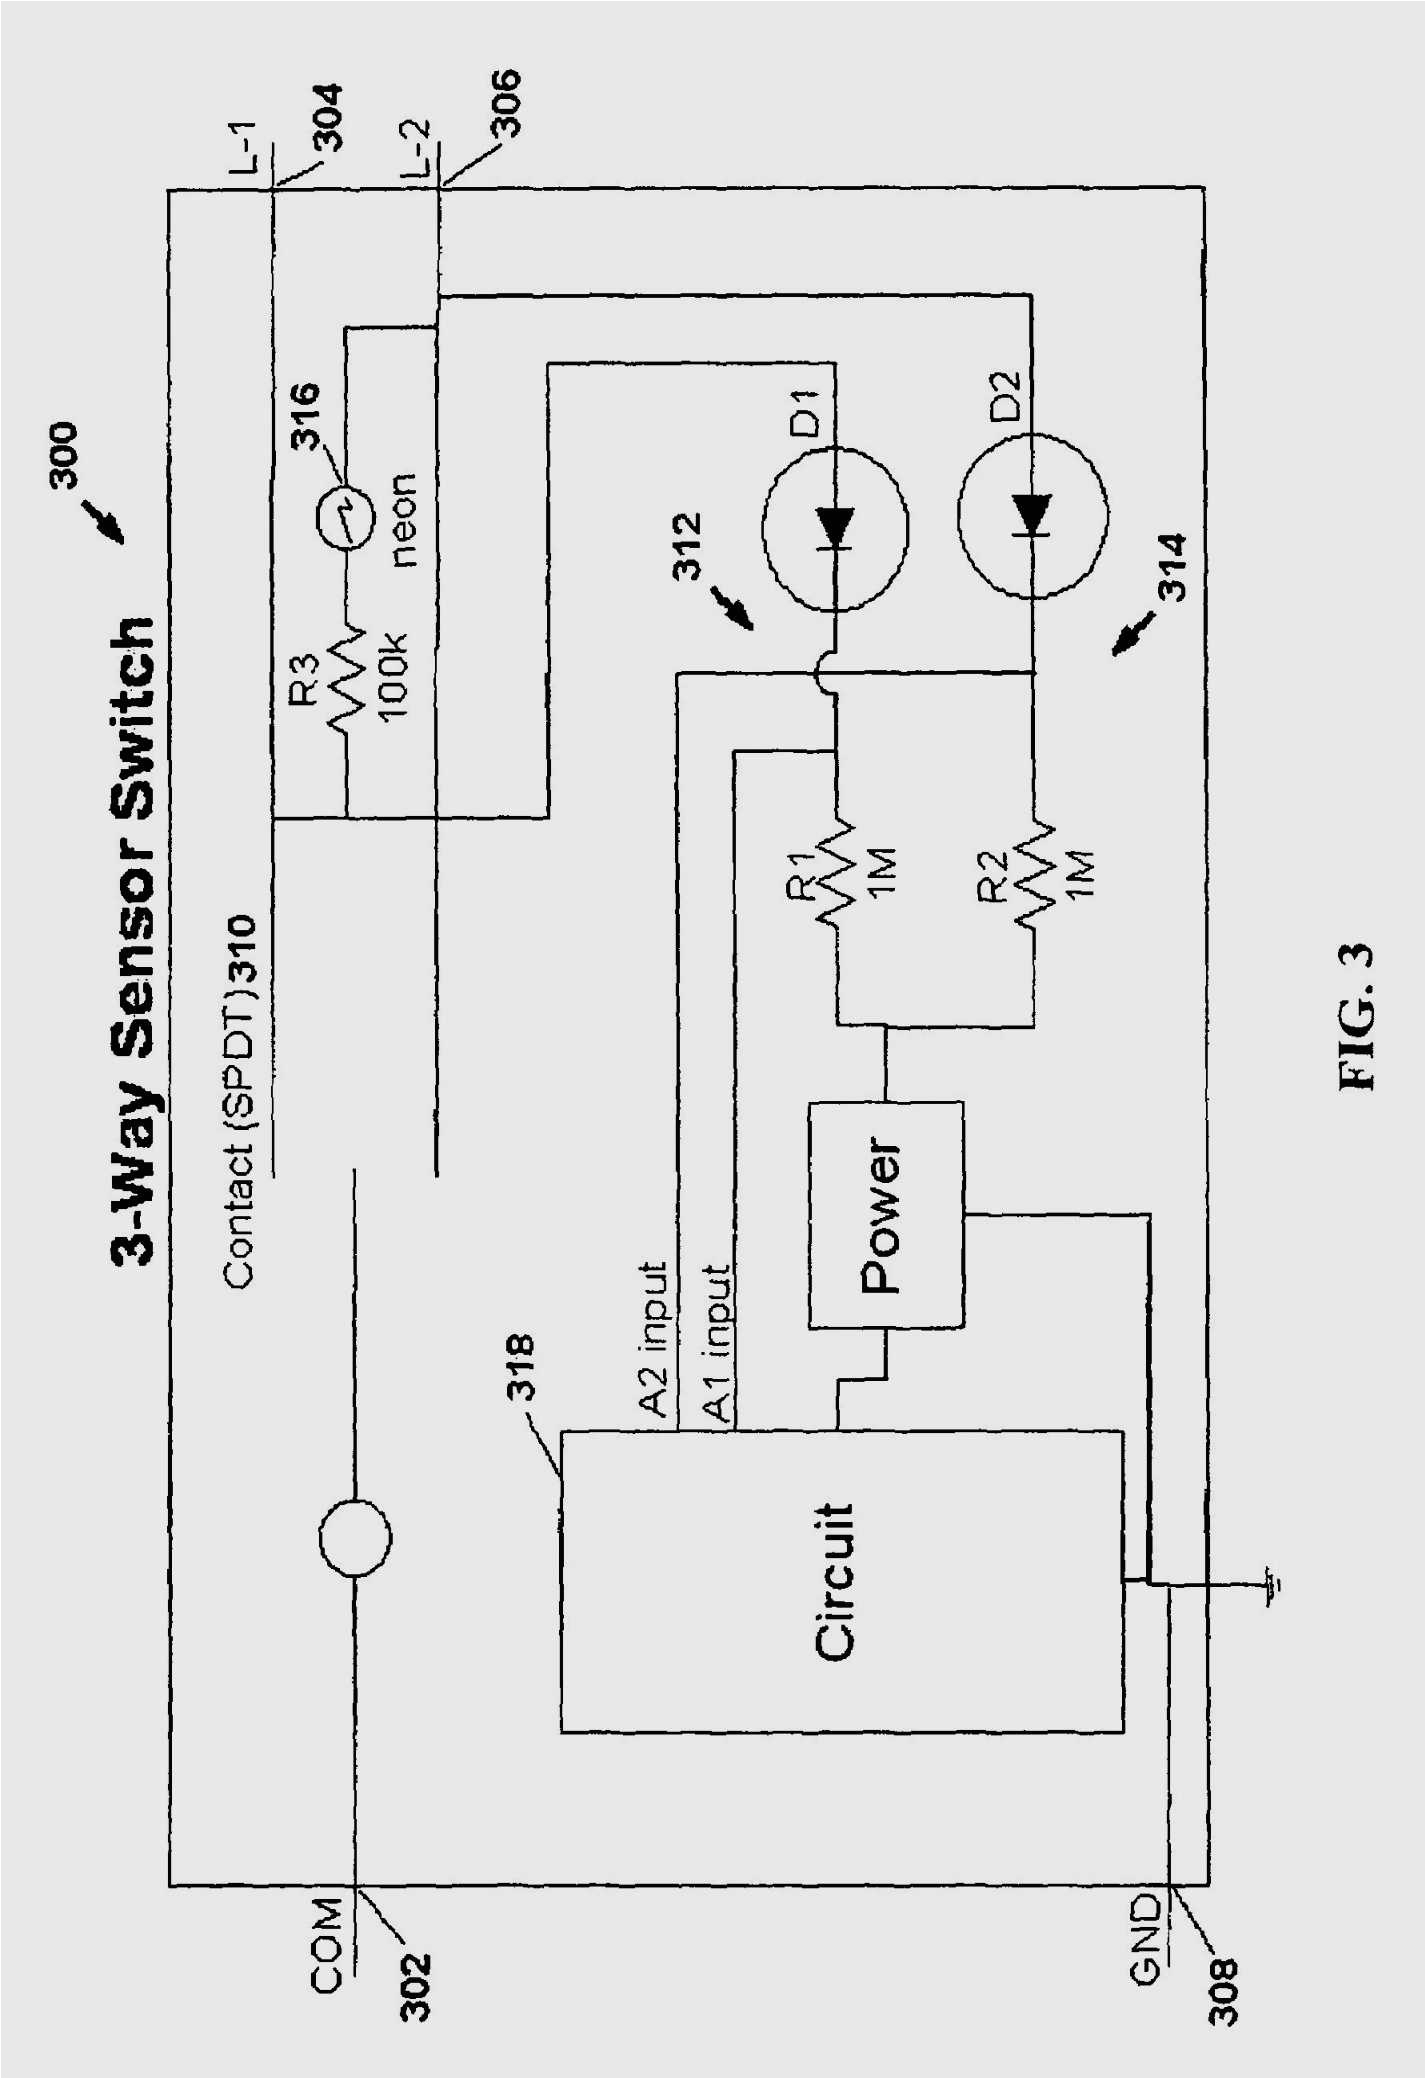 boat ignition switch wiring diagram wiring a 3 way switch with 3 lights diagram fresh energy level diagram hvac diagram best hvac diagram 0d wire